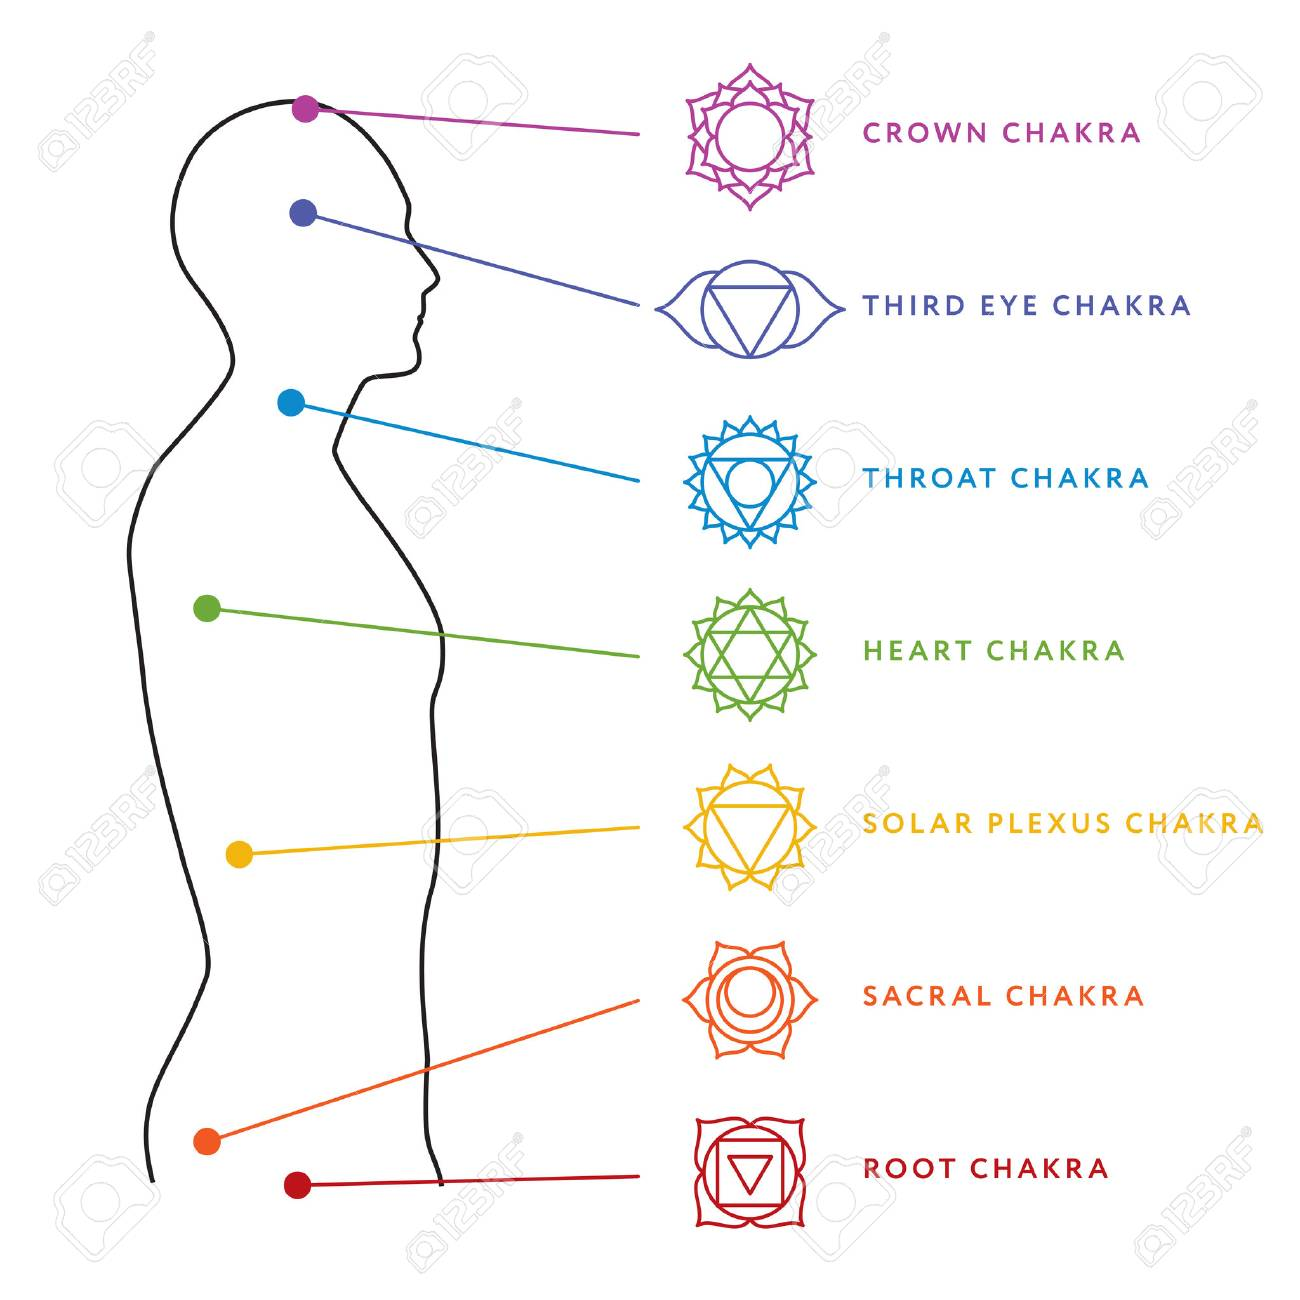 hight resolution of chakra system of human body chart stock vector 86922153